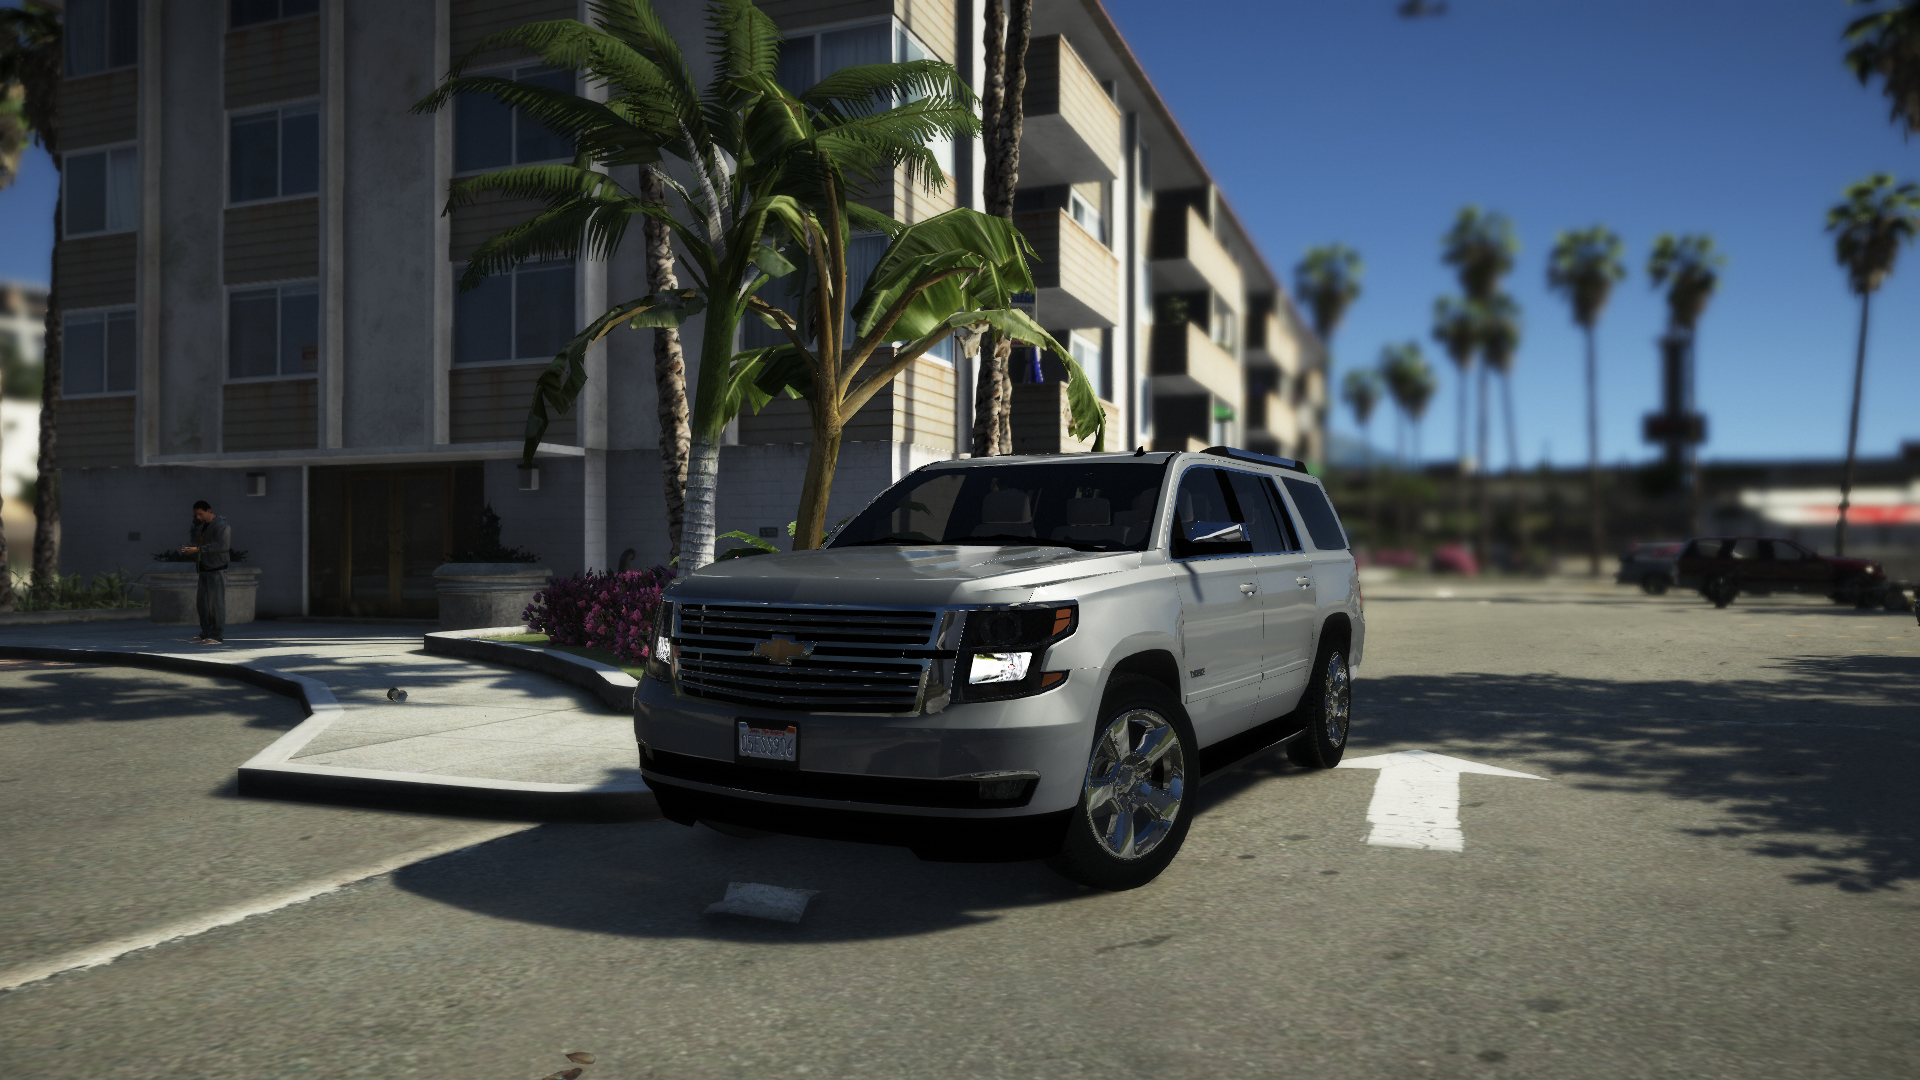 driving the tahoe.png